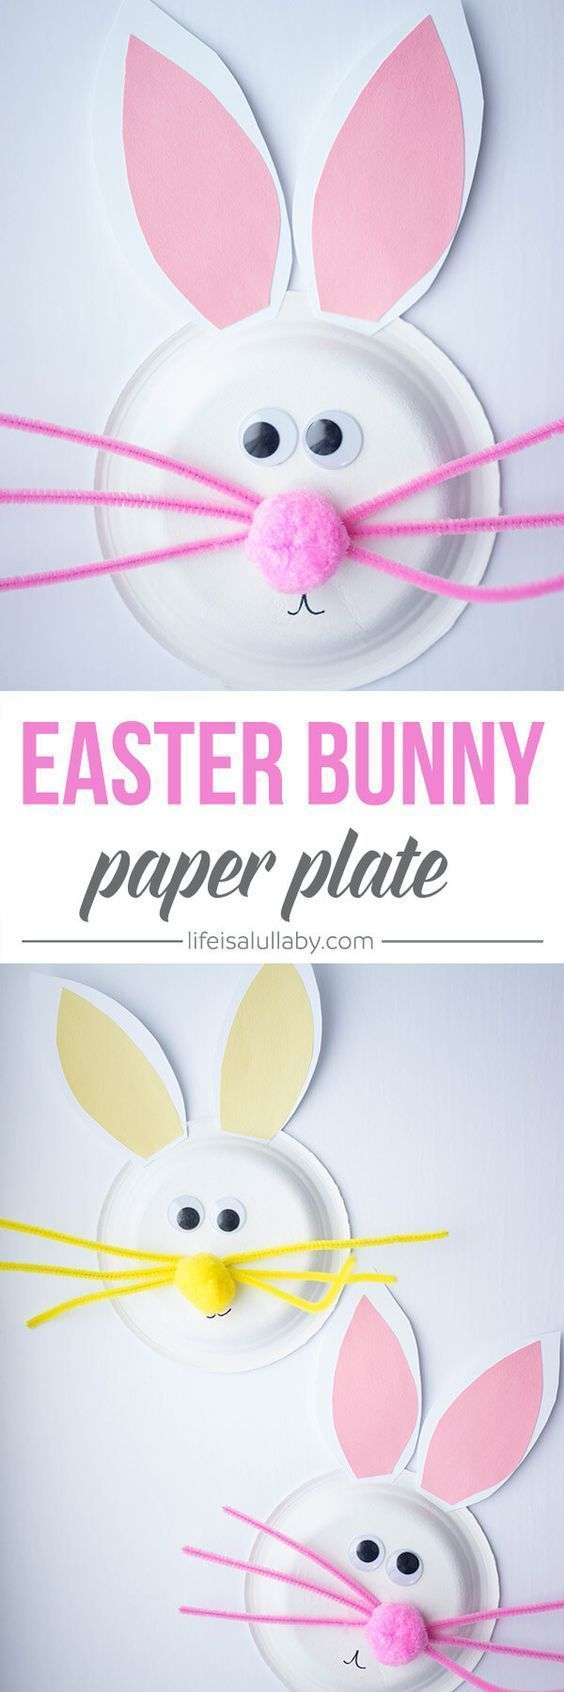 1362 best Easter images on Pinterest | Crafts for kids, Activities ...